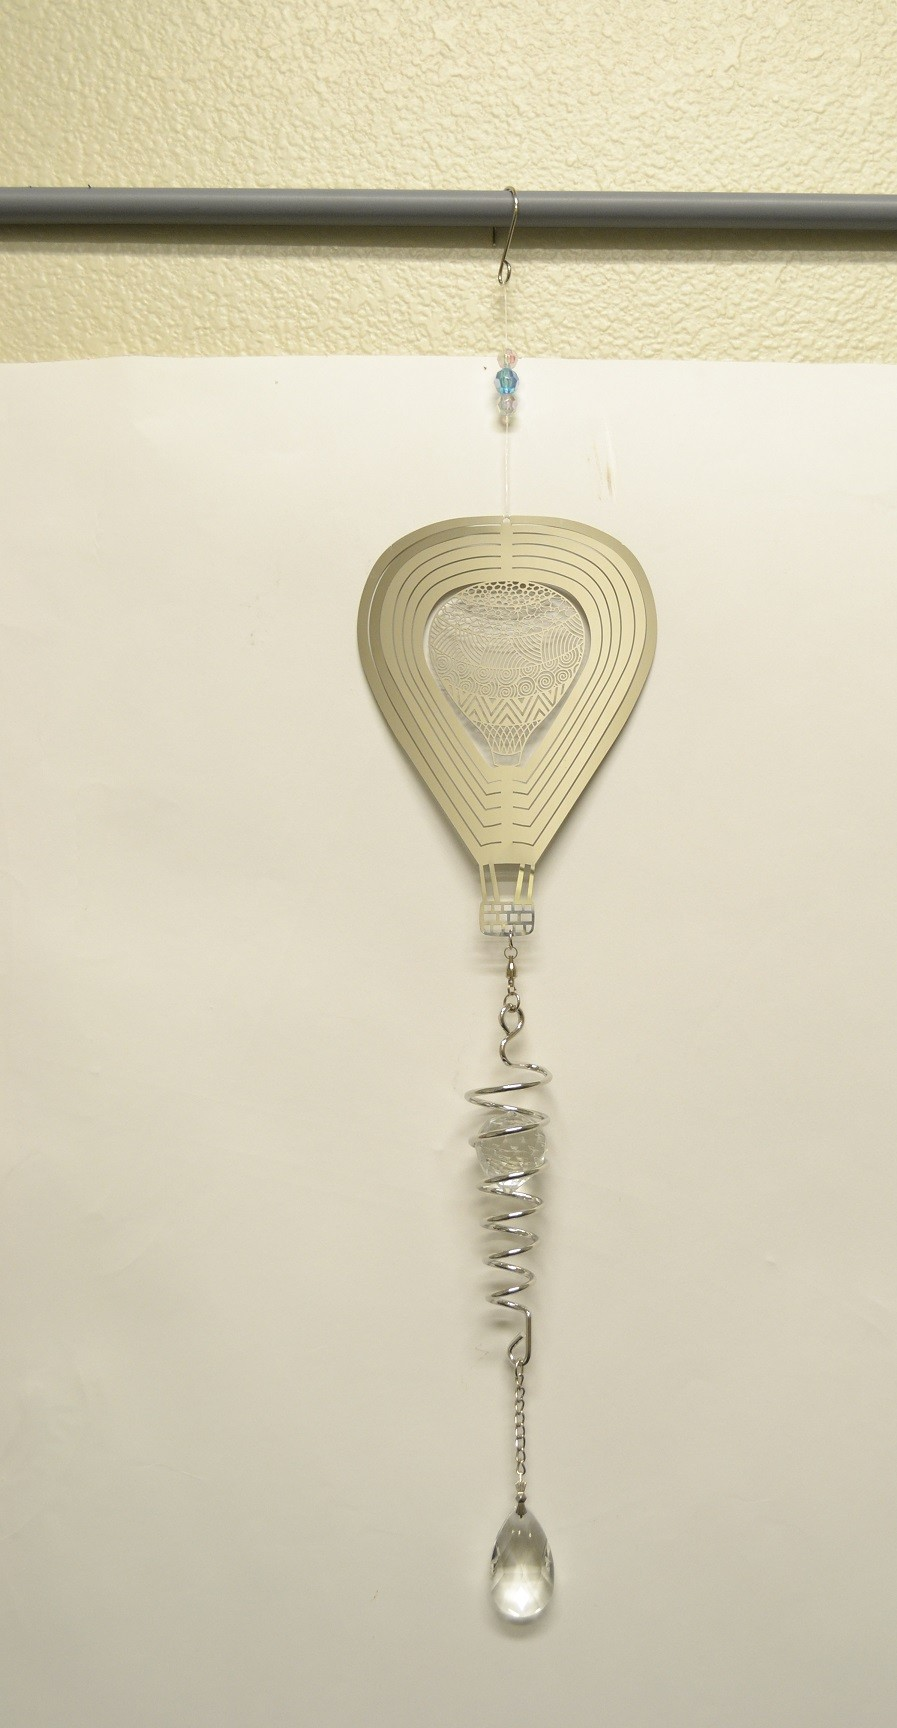 Silver Flower Designs Hot Air Balloon Spiral Tail